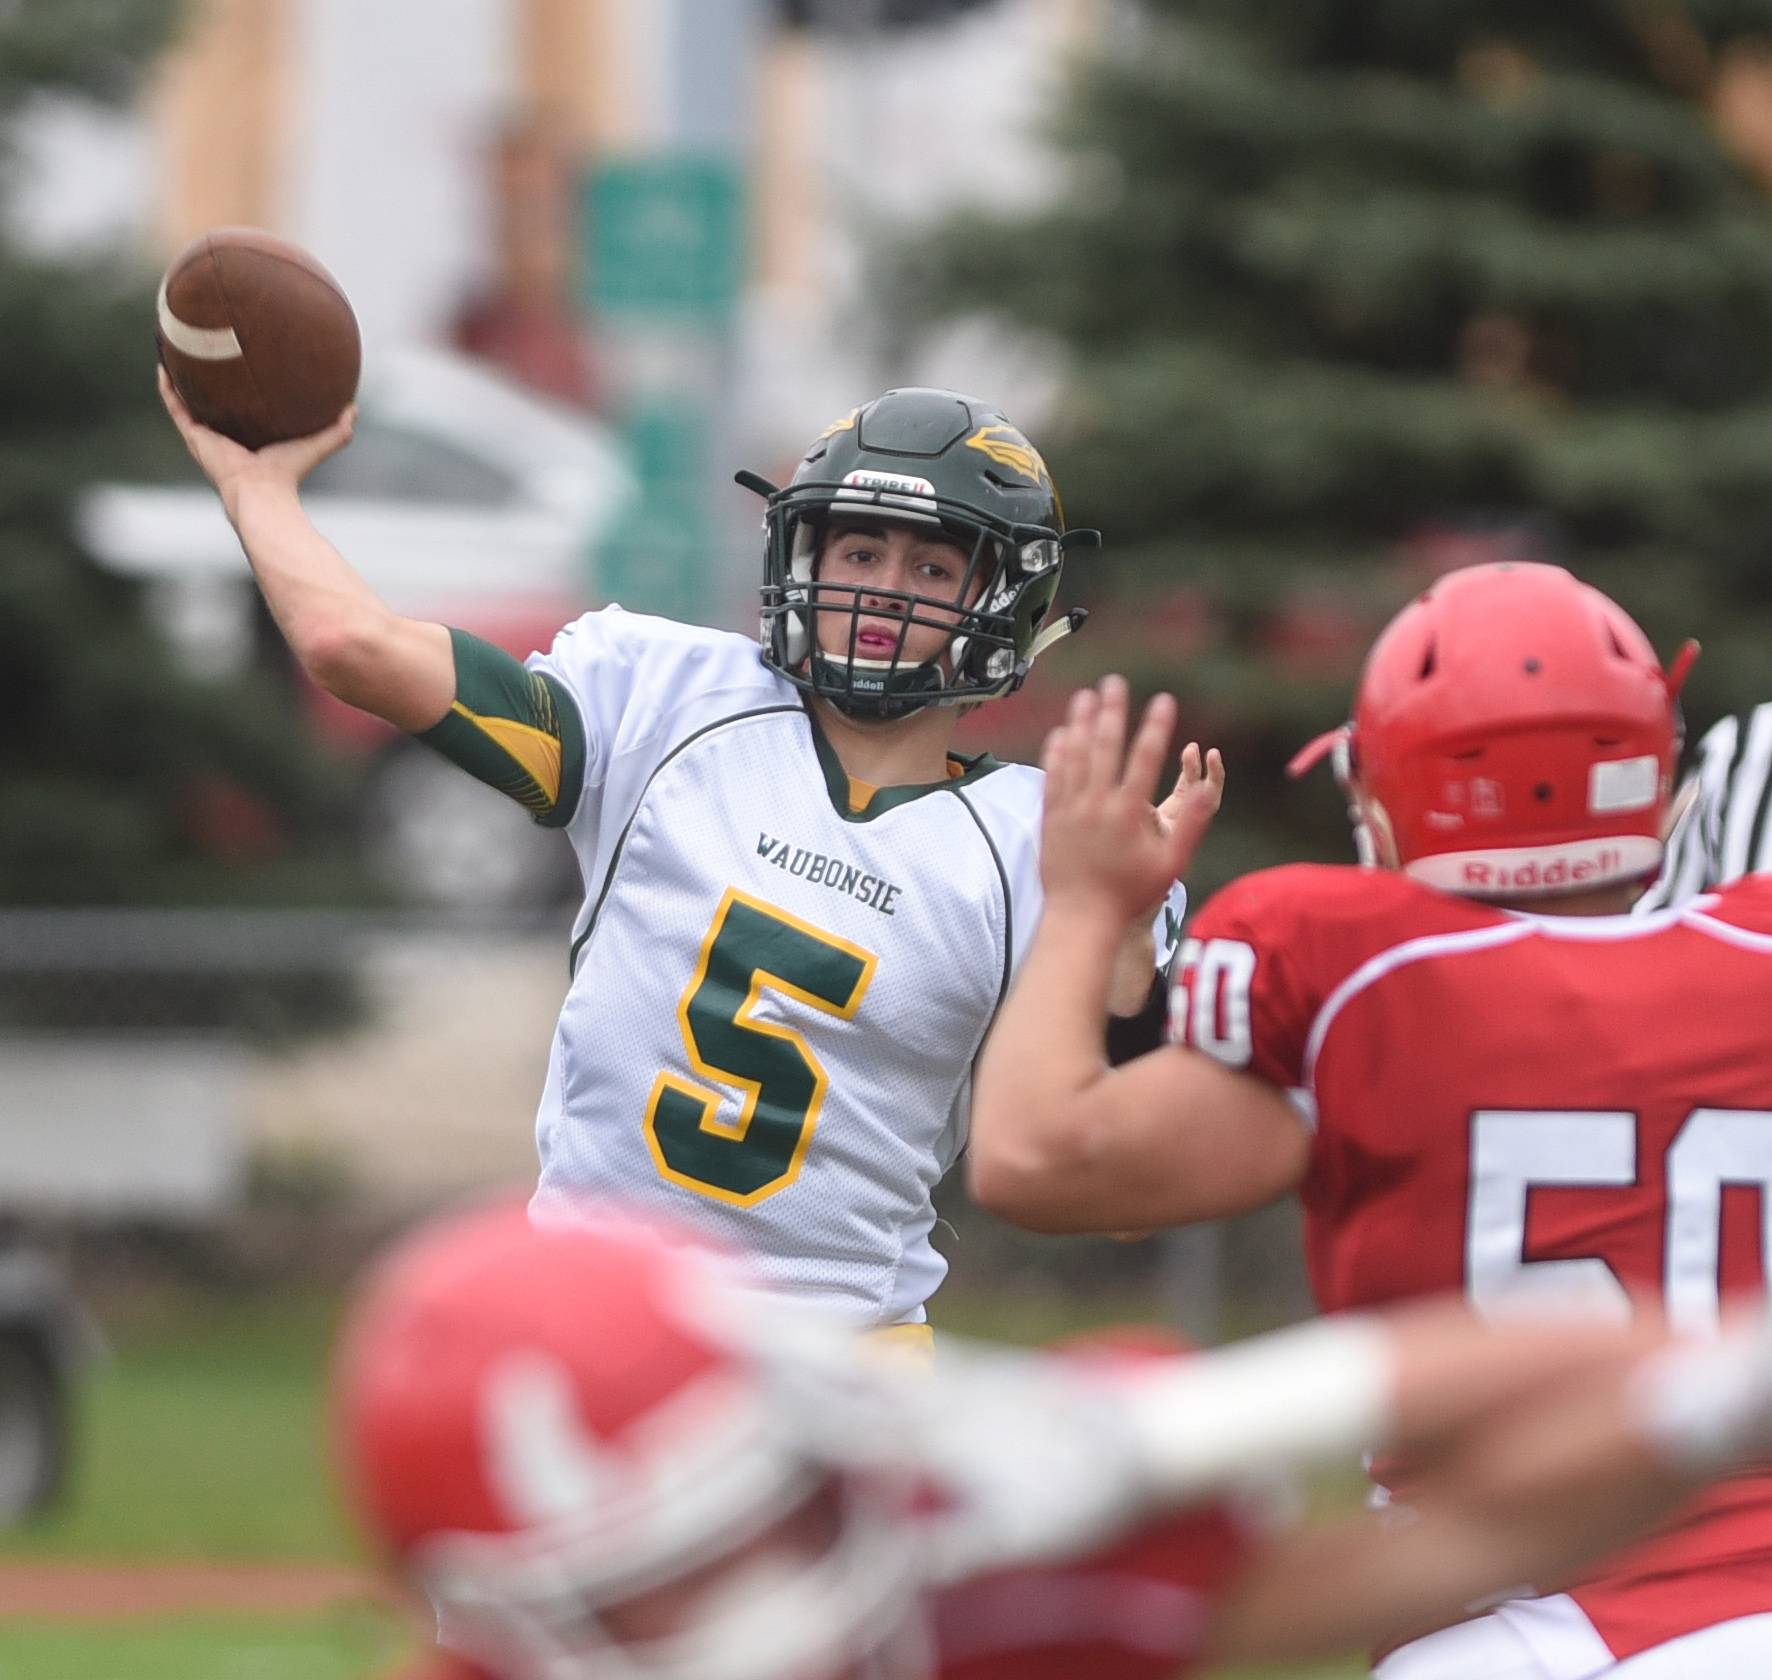 Waubonsie Valley's Tanner Westwood (5) throws a pass during the Waubonsie Valley at Hinsdale Central football game Saturday.